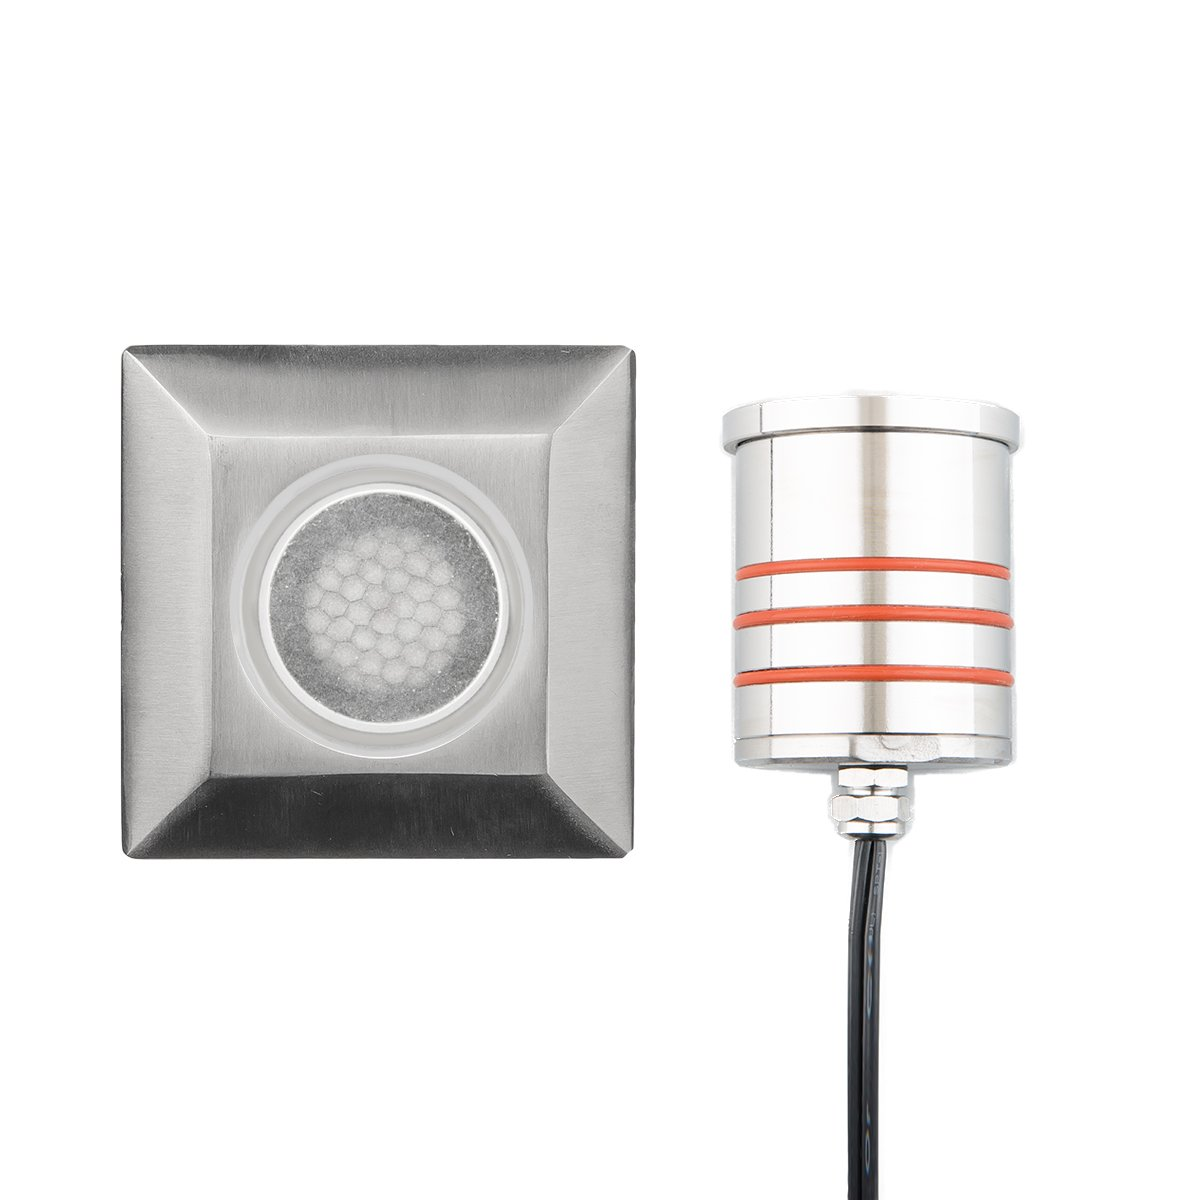 WAC Lighting 2052-30SS WAC 2'' Inground LED 12V Square Indicator Light with Honeycomb Louver in Stainless Steel,